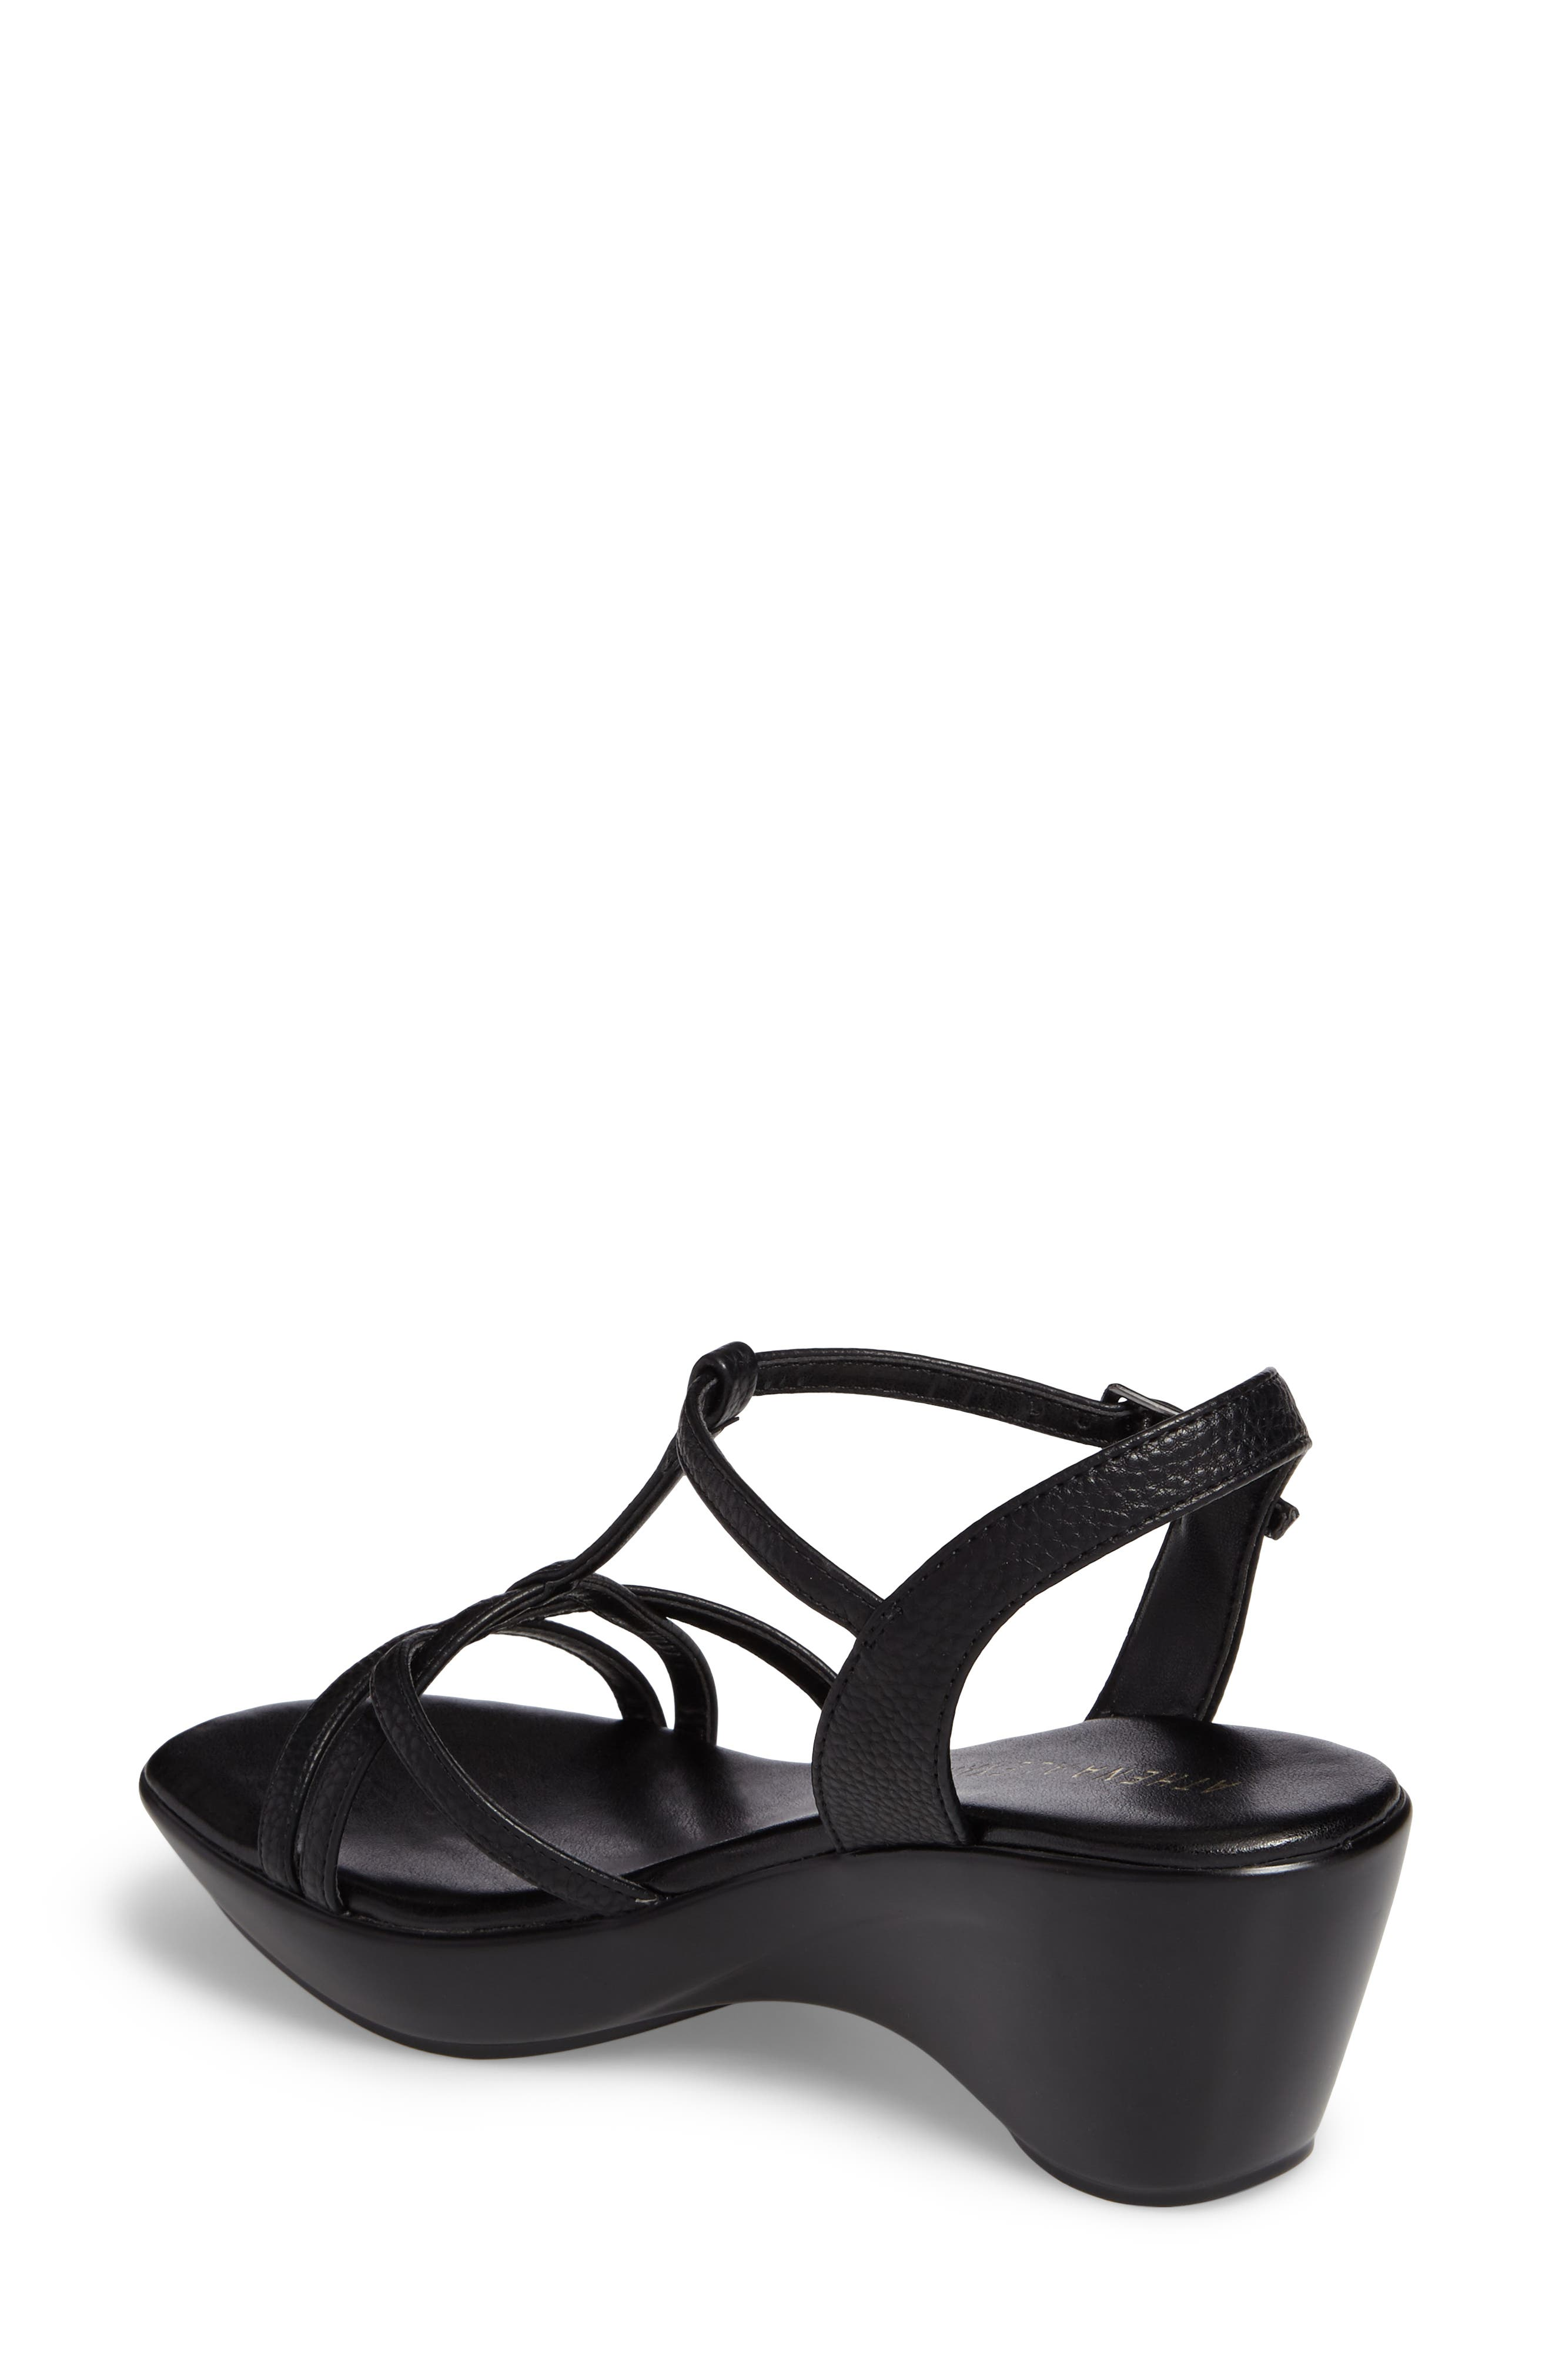 Cassort T-Strap Sandal,                             Alternate thumbnail 3, color,